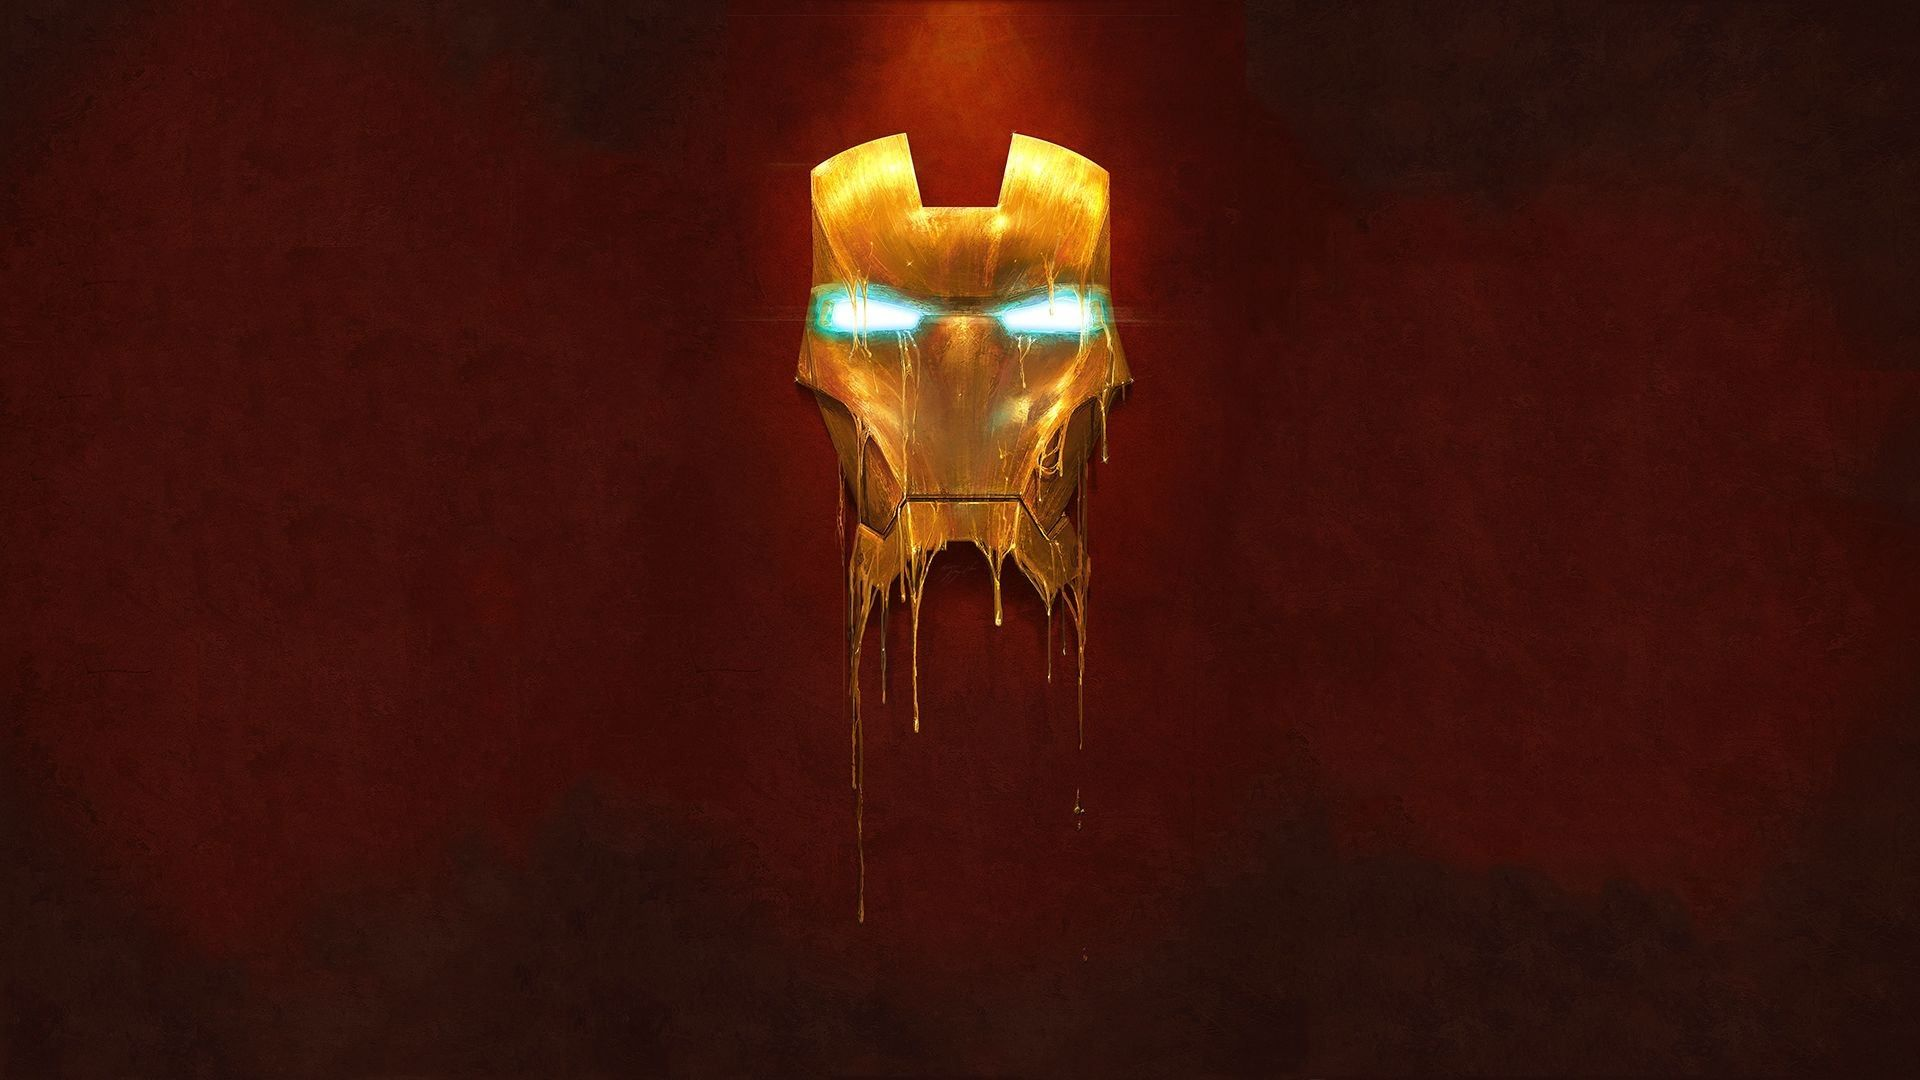 Great Digital Painting Of Ironman S Mask From The Avengers Melting Click The Link For The Full Wallpaper Http Digita Marvel Comics Hd Wallpaper Wallpaper